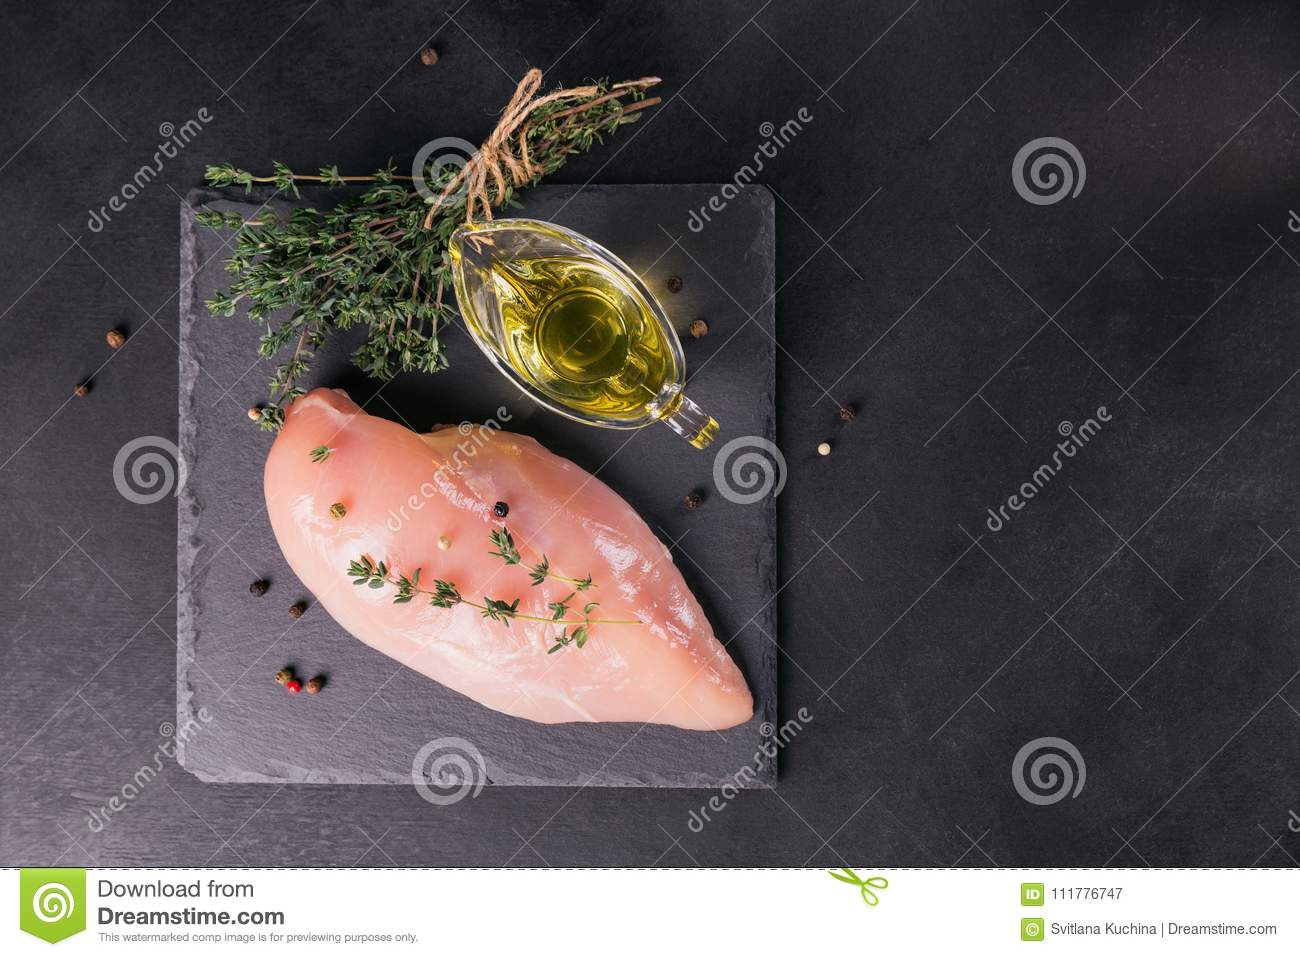 Raw chicken fillets with spices and herbs.